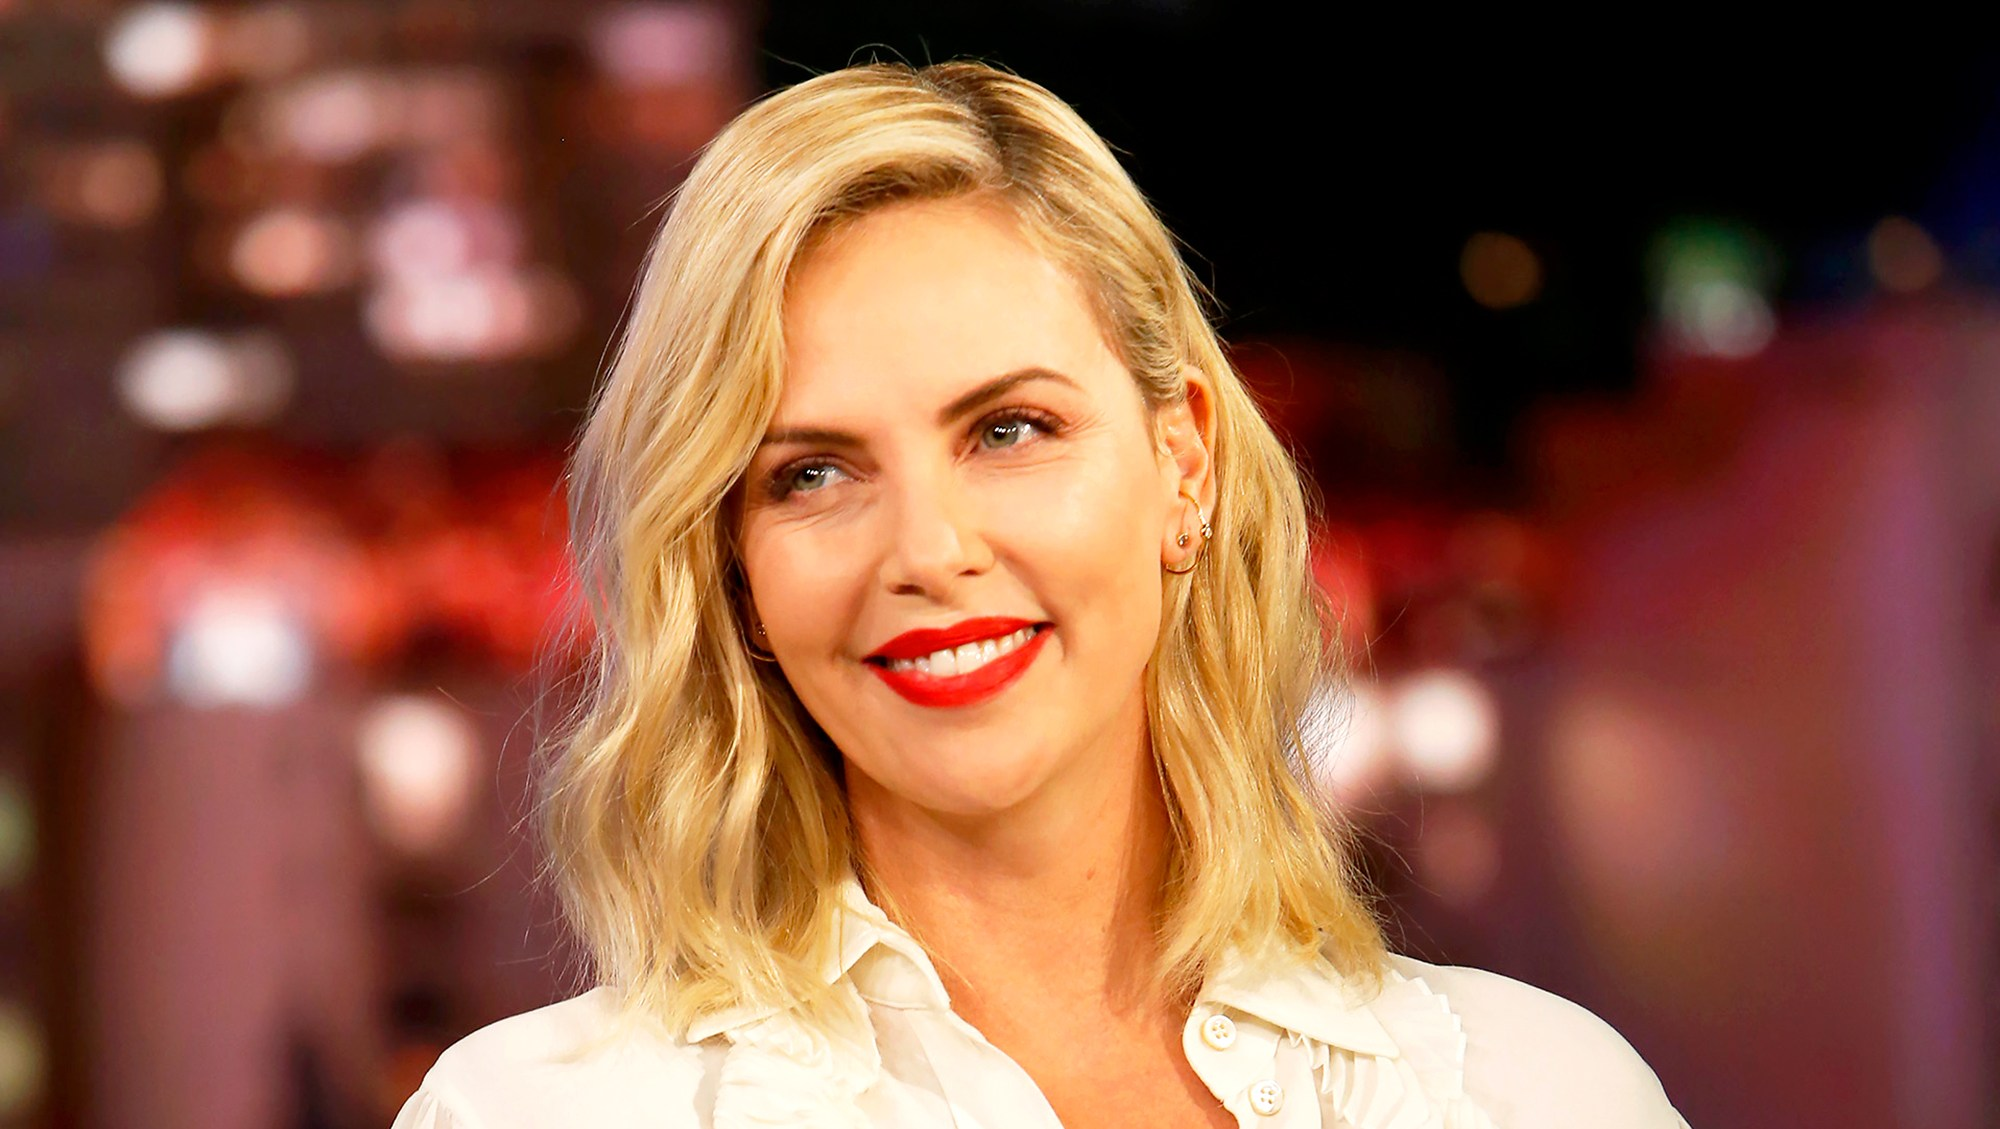 Charlize Theron on 'Jimmy Kimmel Live!'